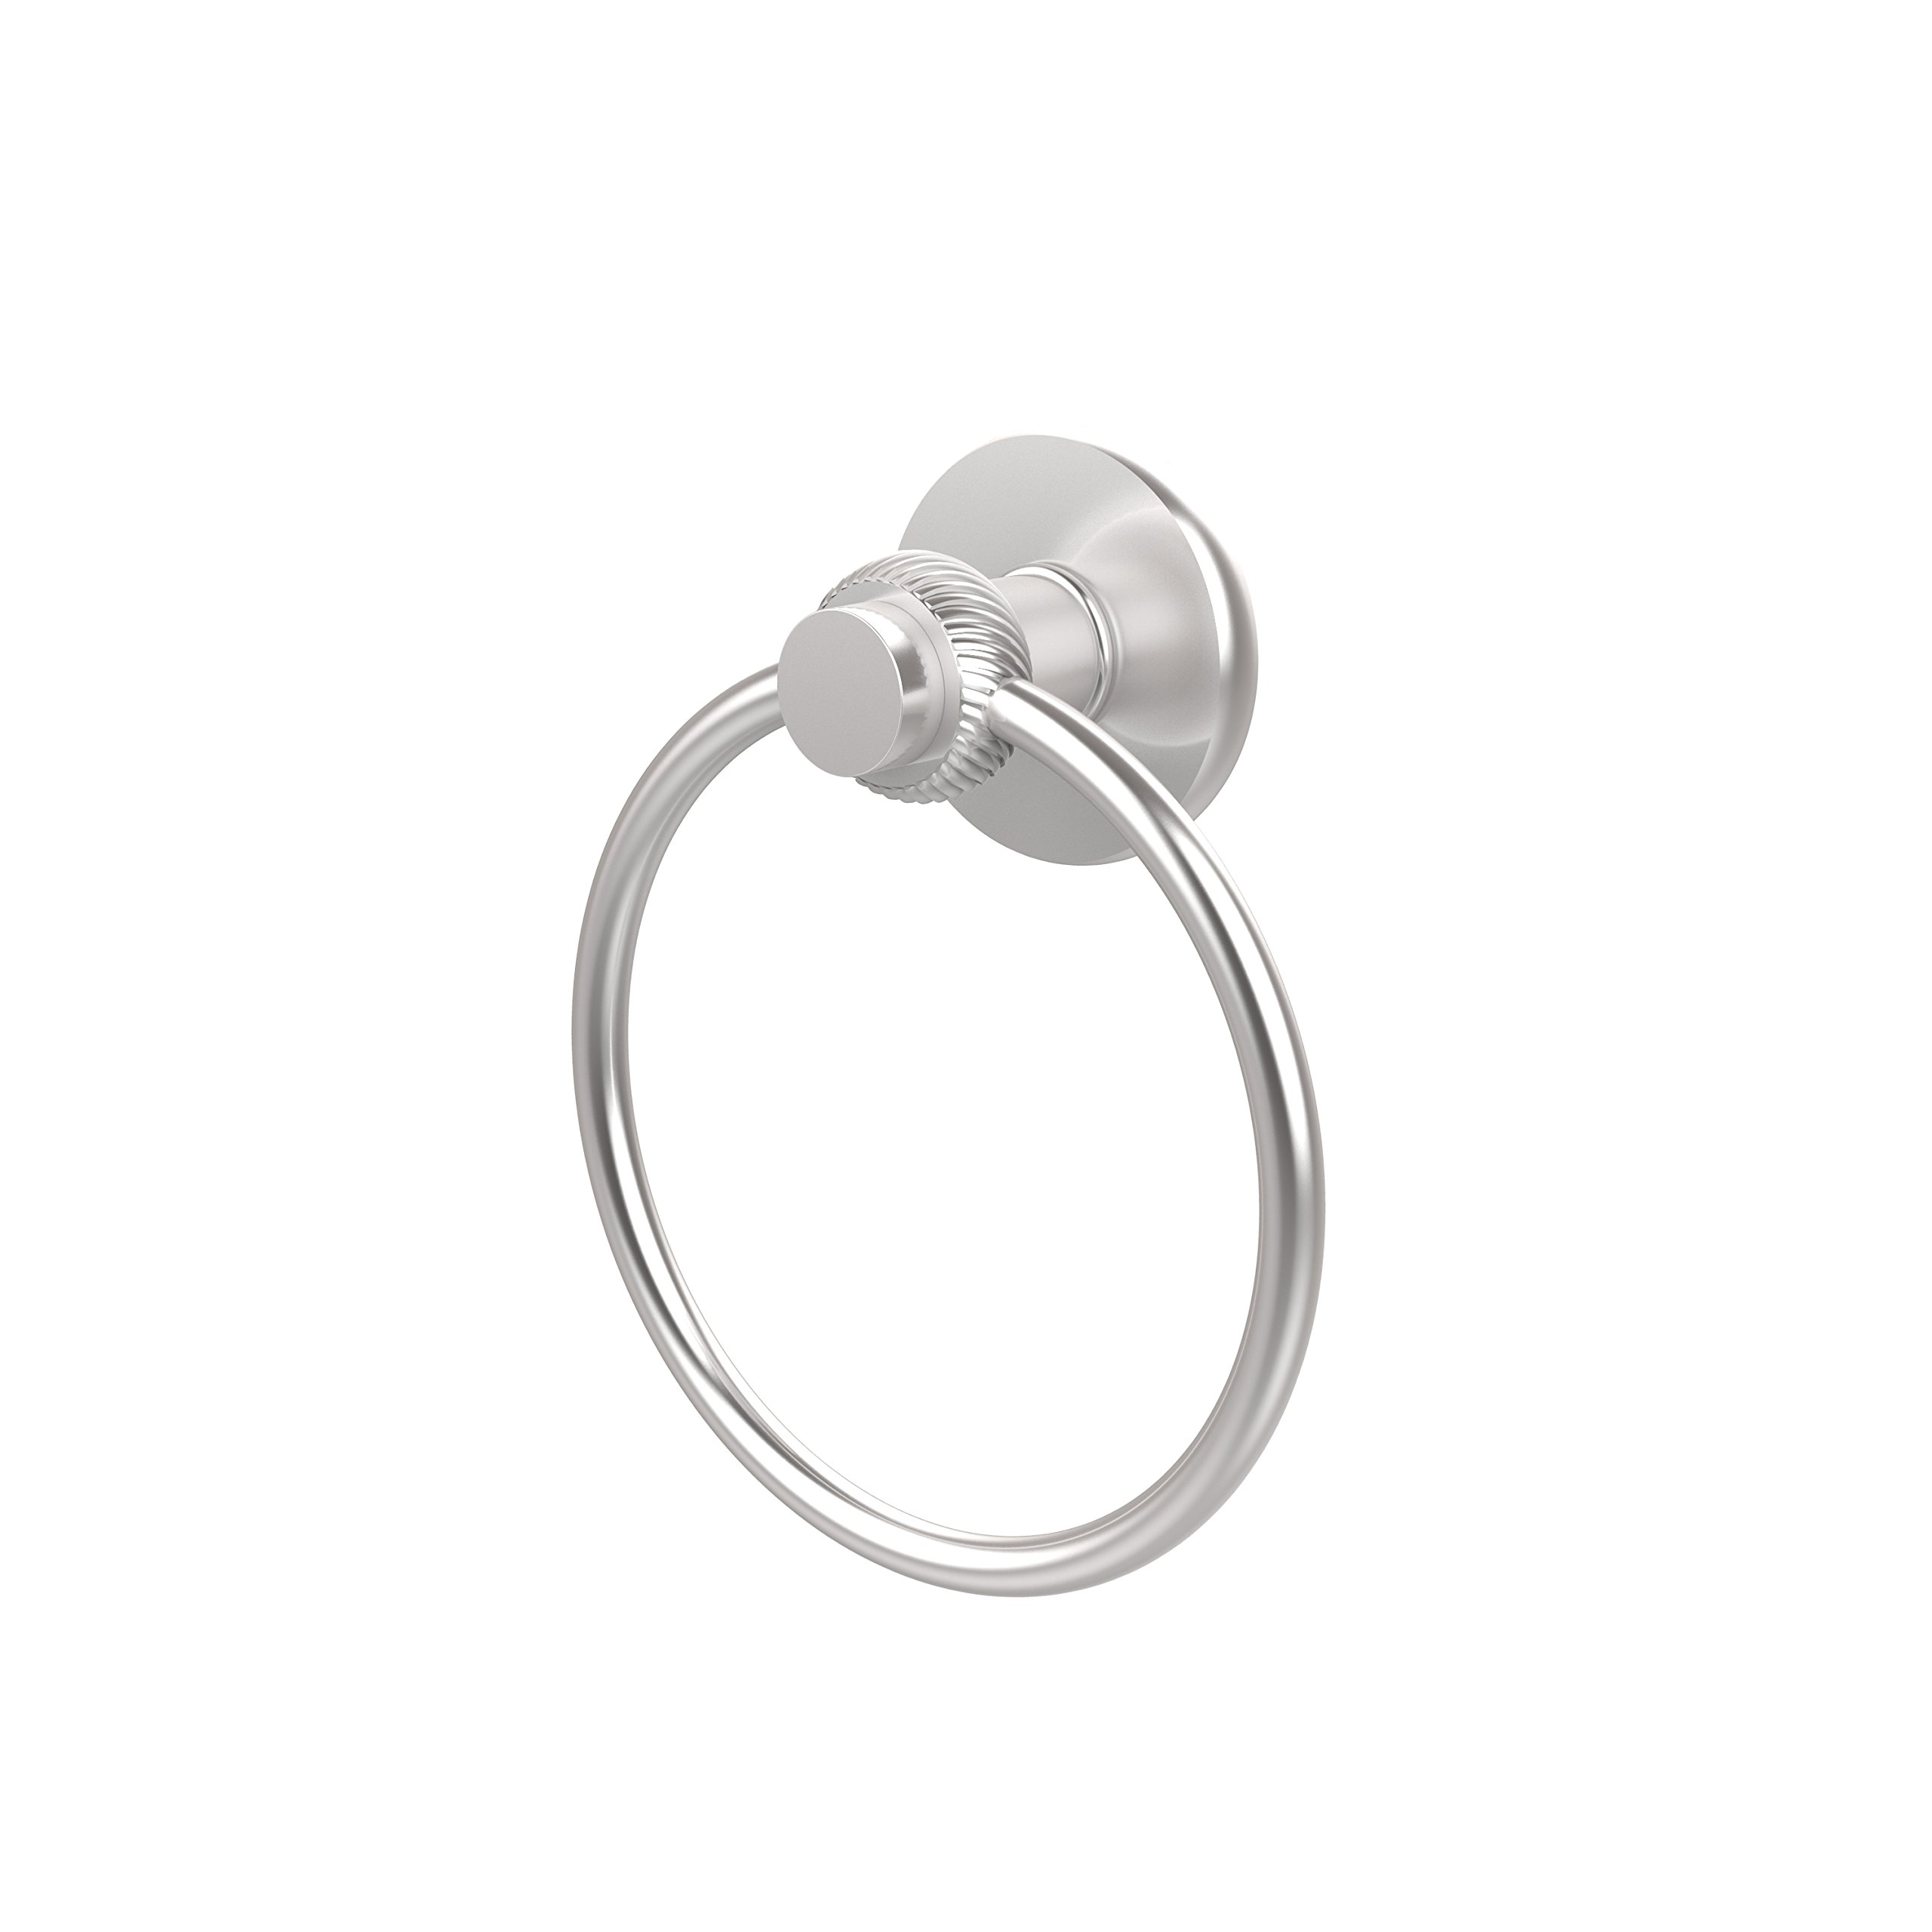 Allied Brass 916T-SCH Towel Ring, Satin Chrome